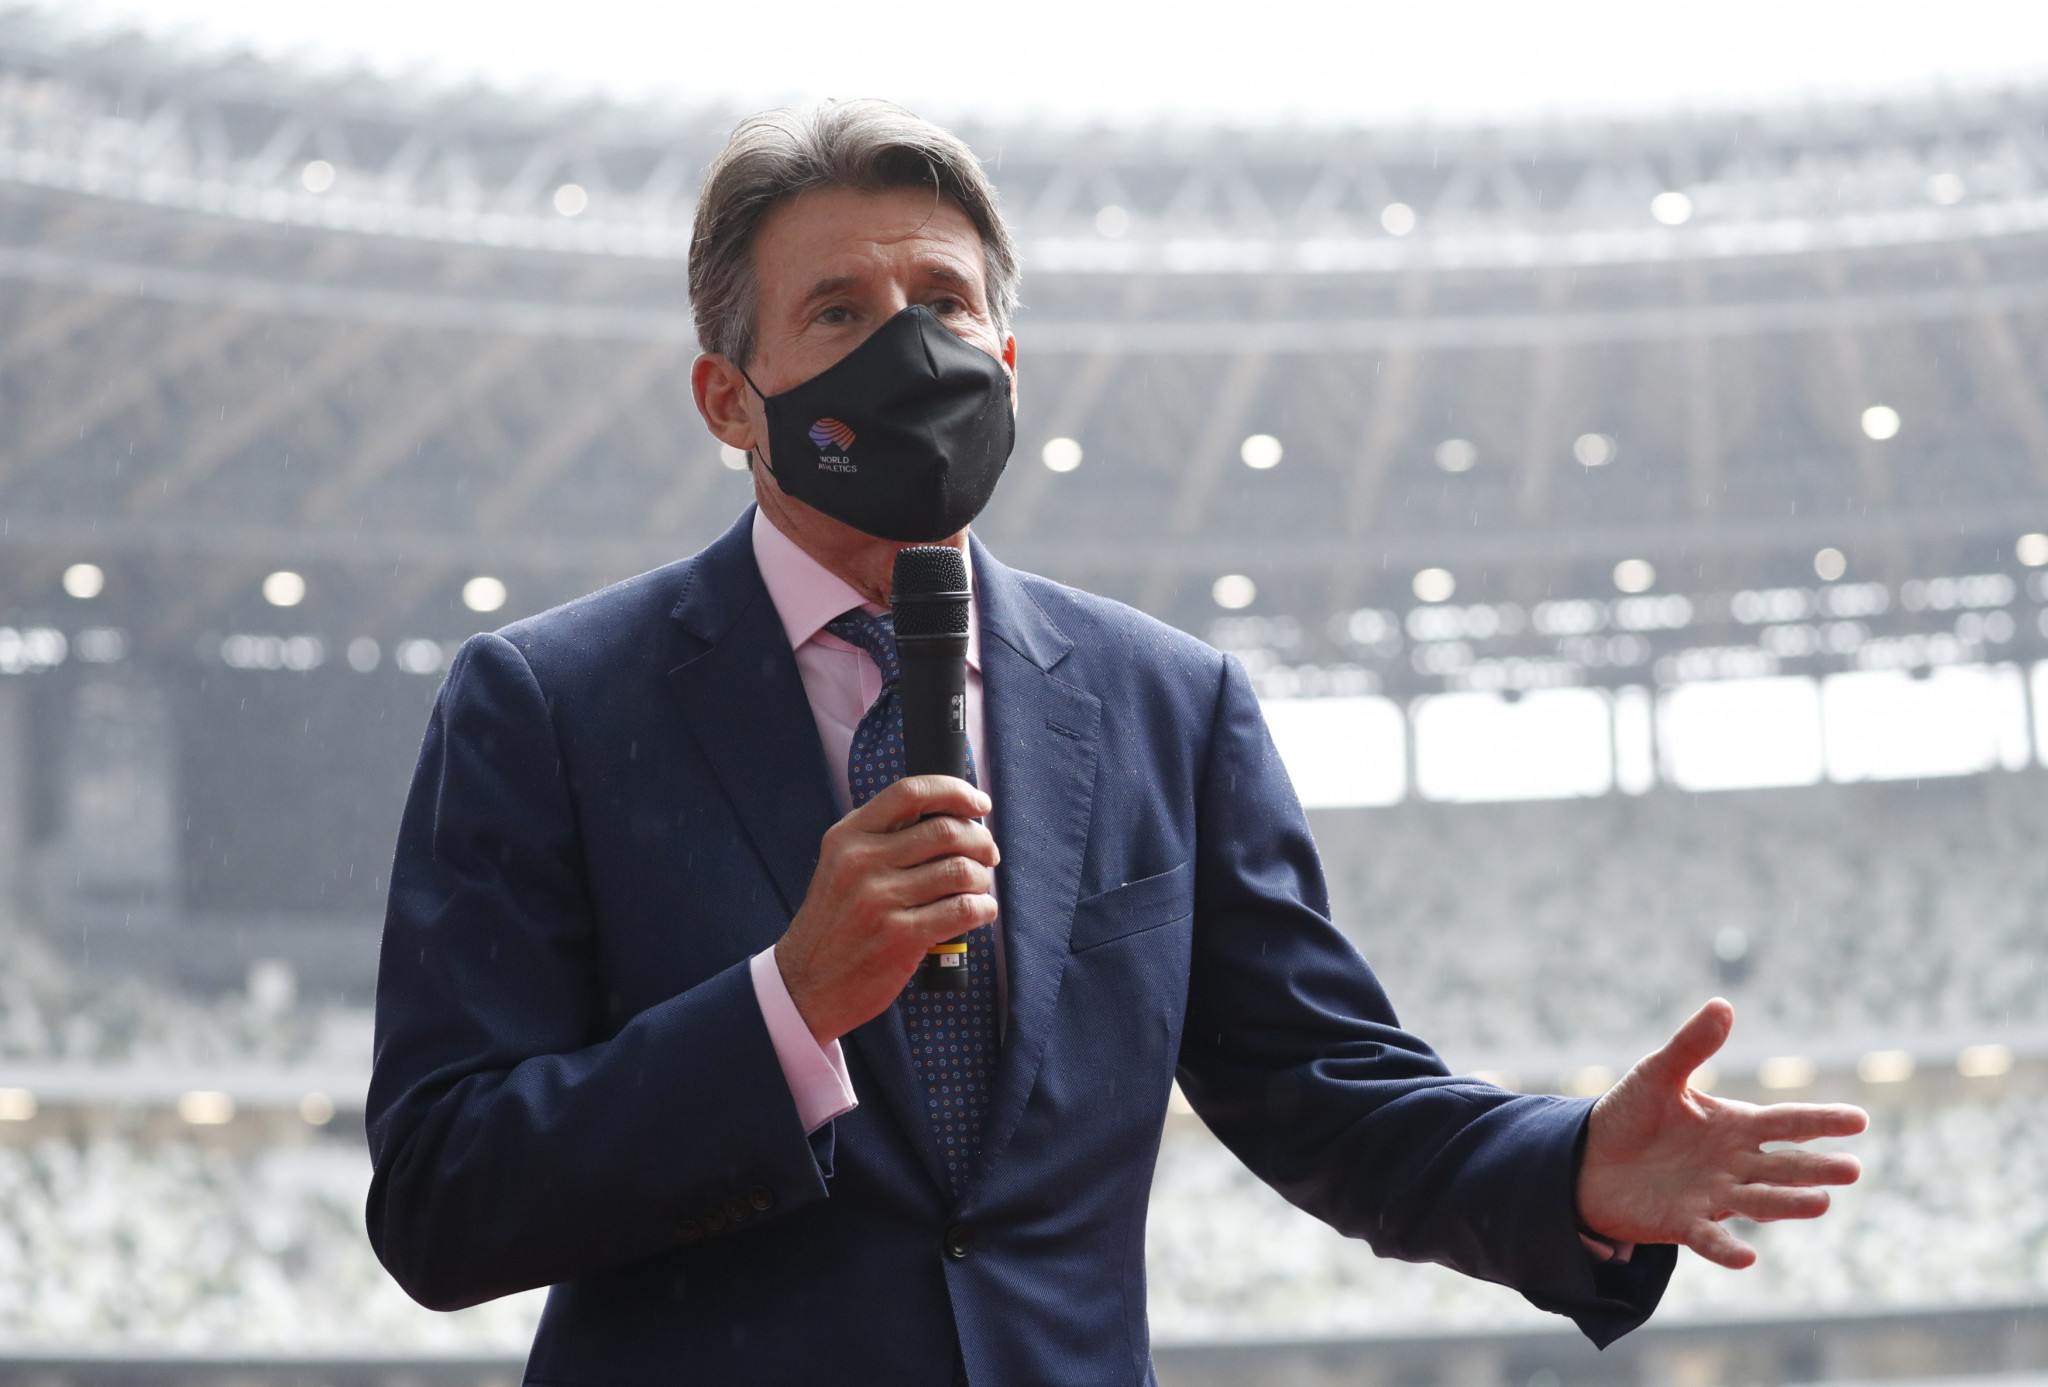 World Athletics President Sebastian Coe has offered his support to athletes willing to protest at next year's Olympic Games in Tokyo ©Getty Images